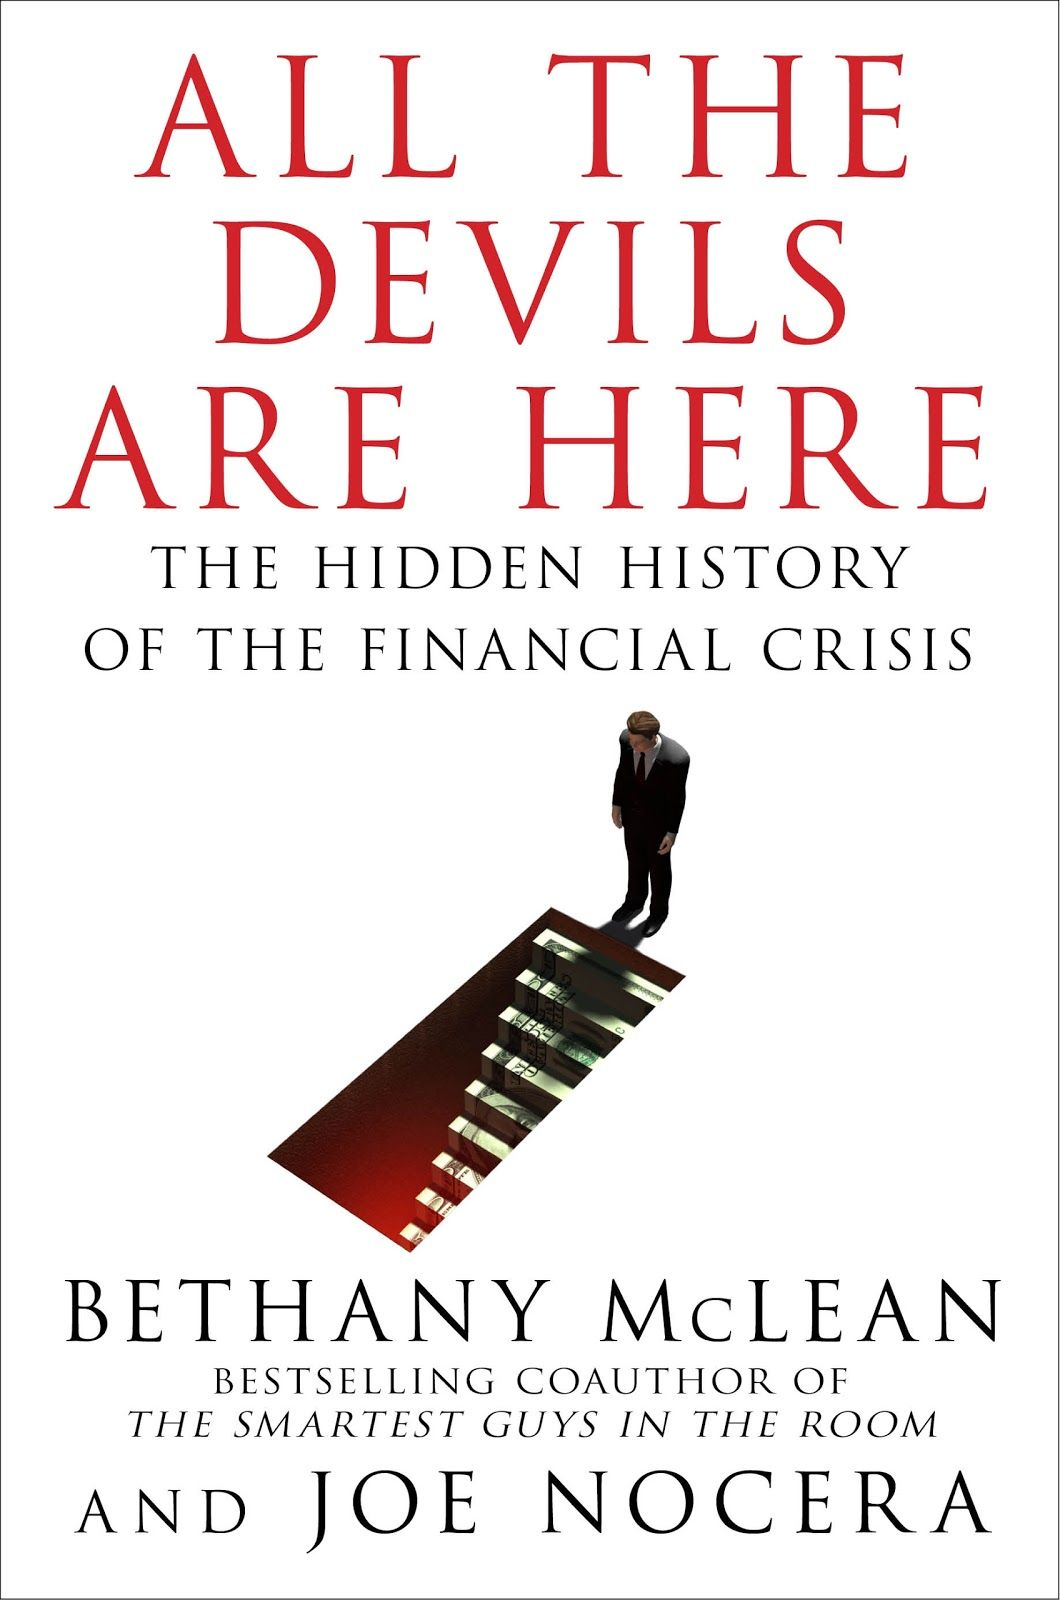 #AlltheDevilsAreHere: The #Hidden #History of the #Financial #Crisis is a #nonfiction book by authors #BethanyMcLean and #JosephNocera about the 2008 #financial #crisis. #AlltheDevilsAreHere #explores the #motivations of #everyone from famous #CEOs, #cabinetsecretaries, and #politicians to anonymous #lenders, #borrowers, #analysts, and #WallStreet #traders.